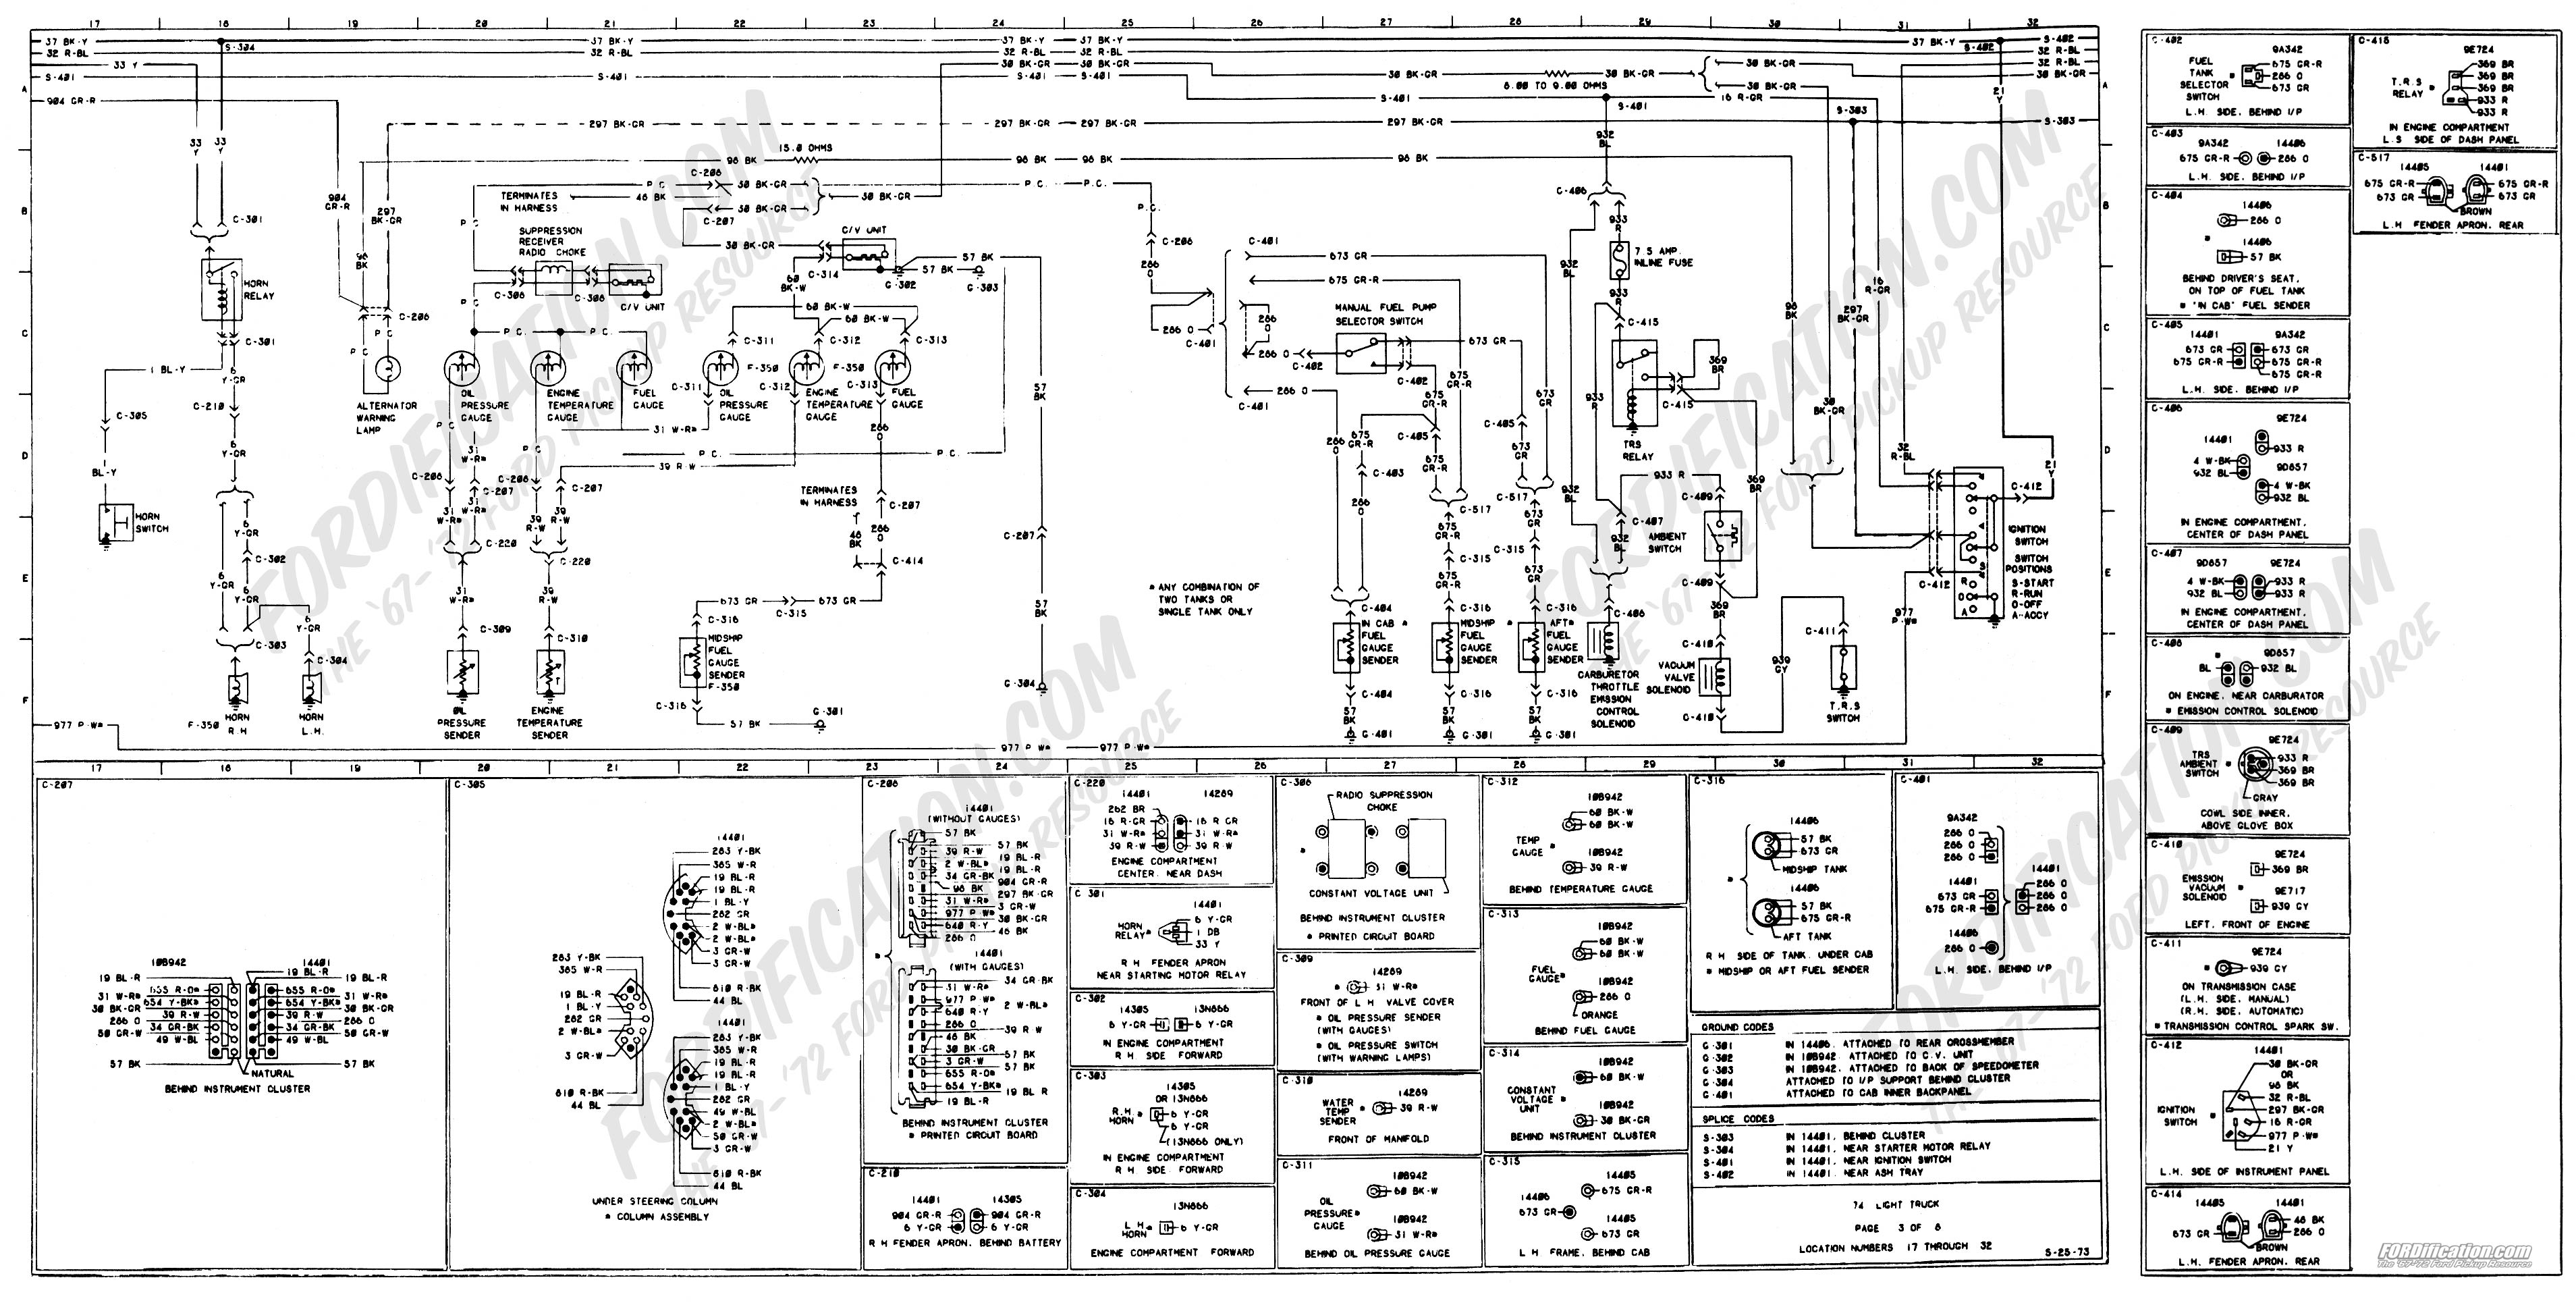 83 f100 wiring diagram help ford truck everything you need to know rh newsnanalysis co